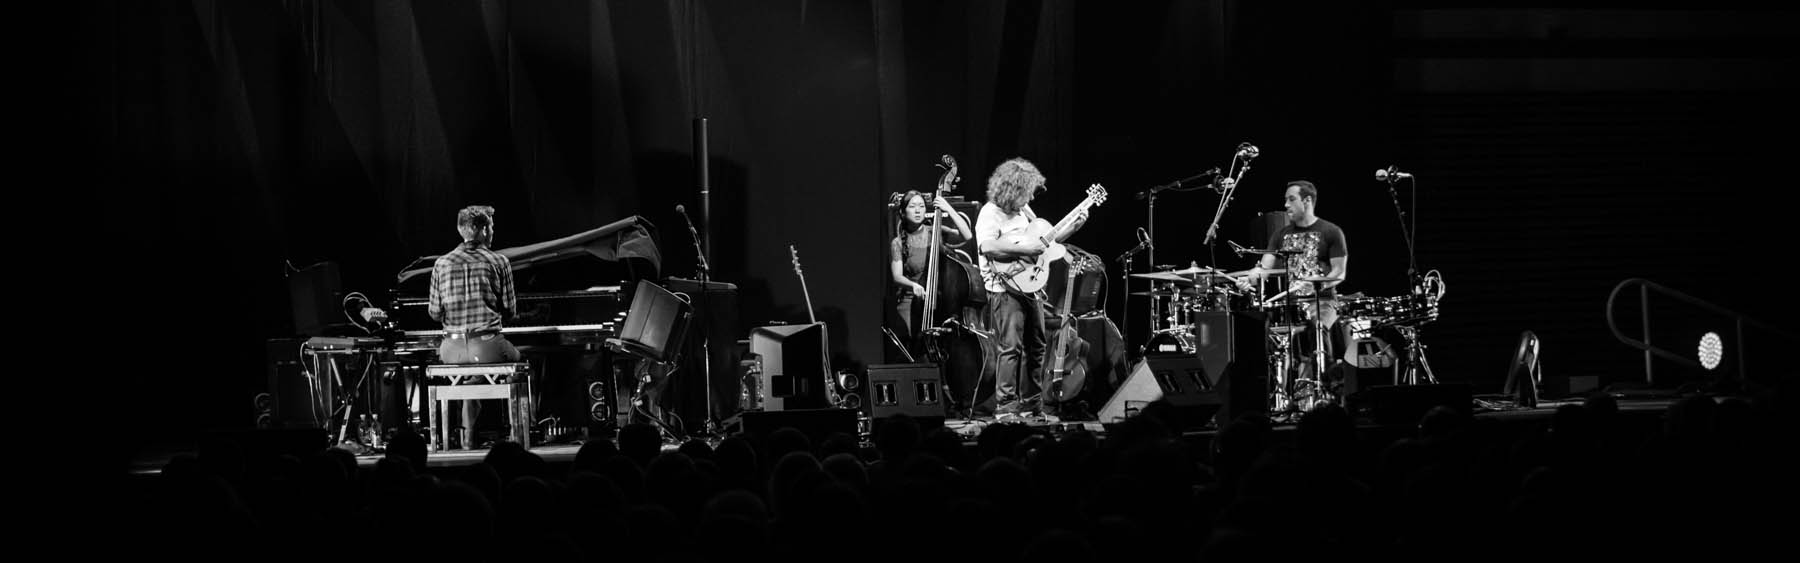 Pat Metheny - fot Margielski_001